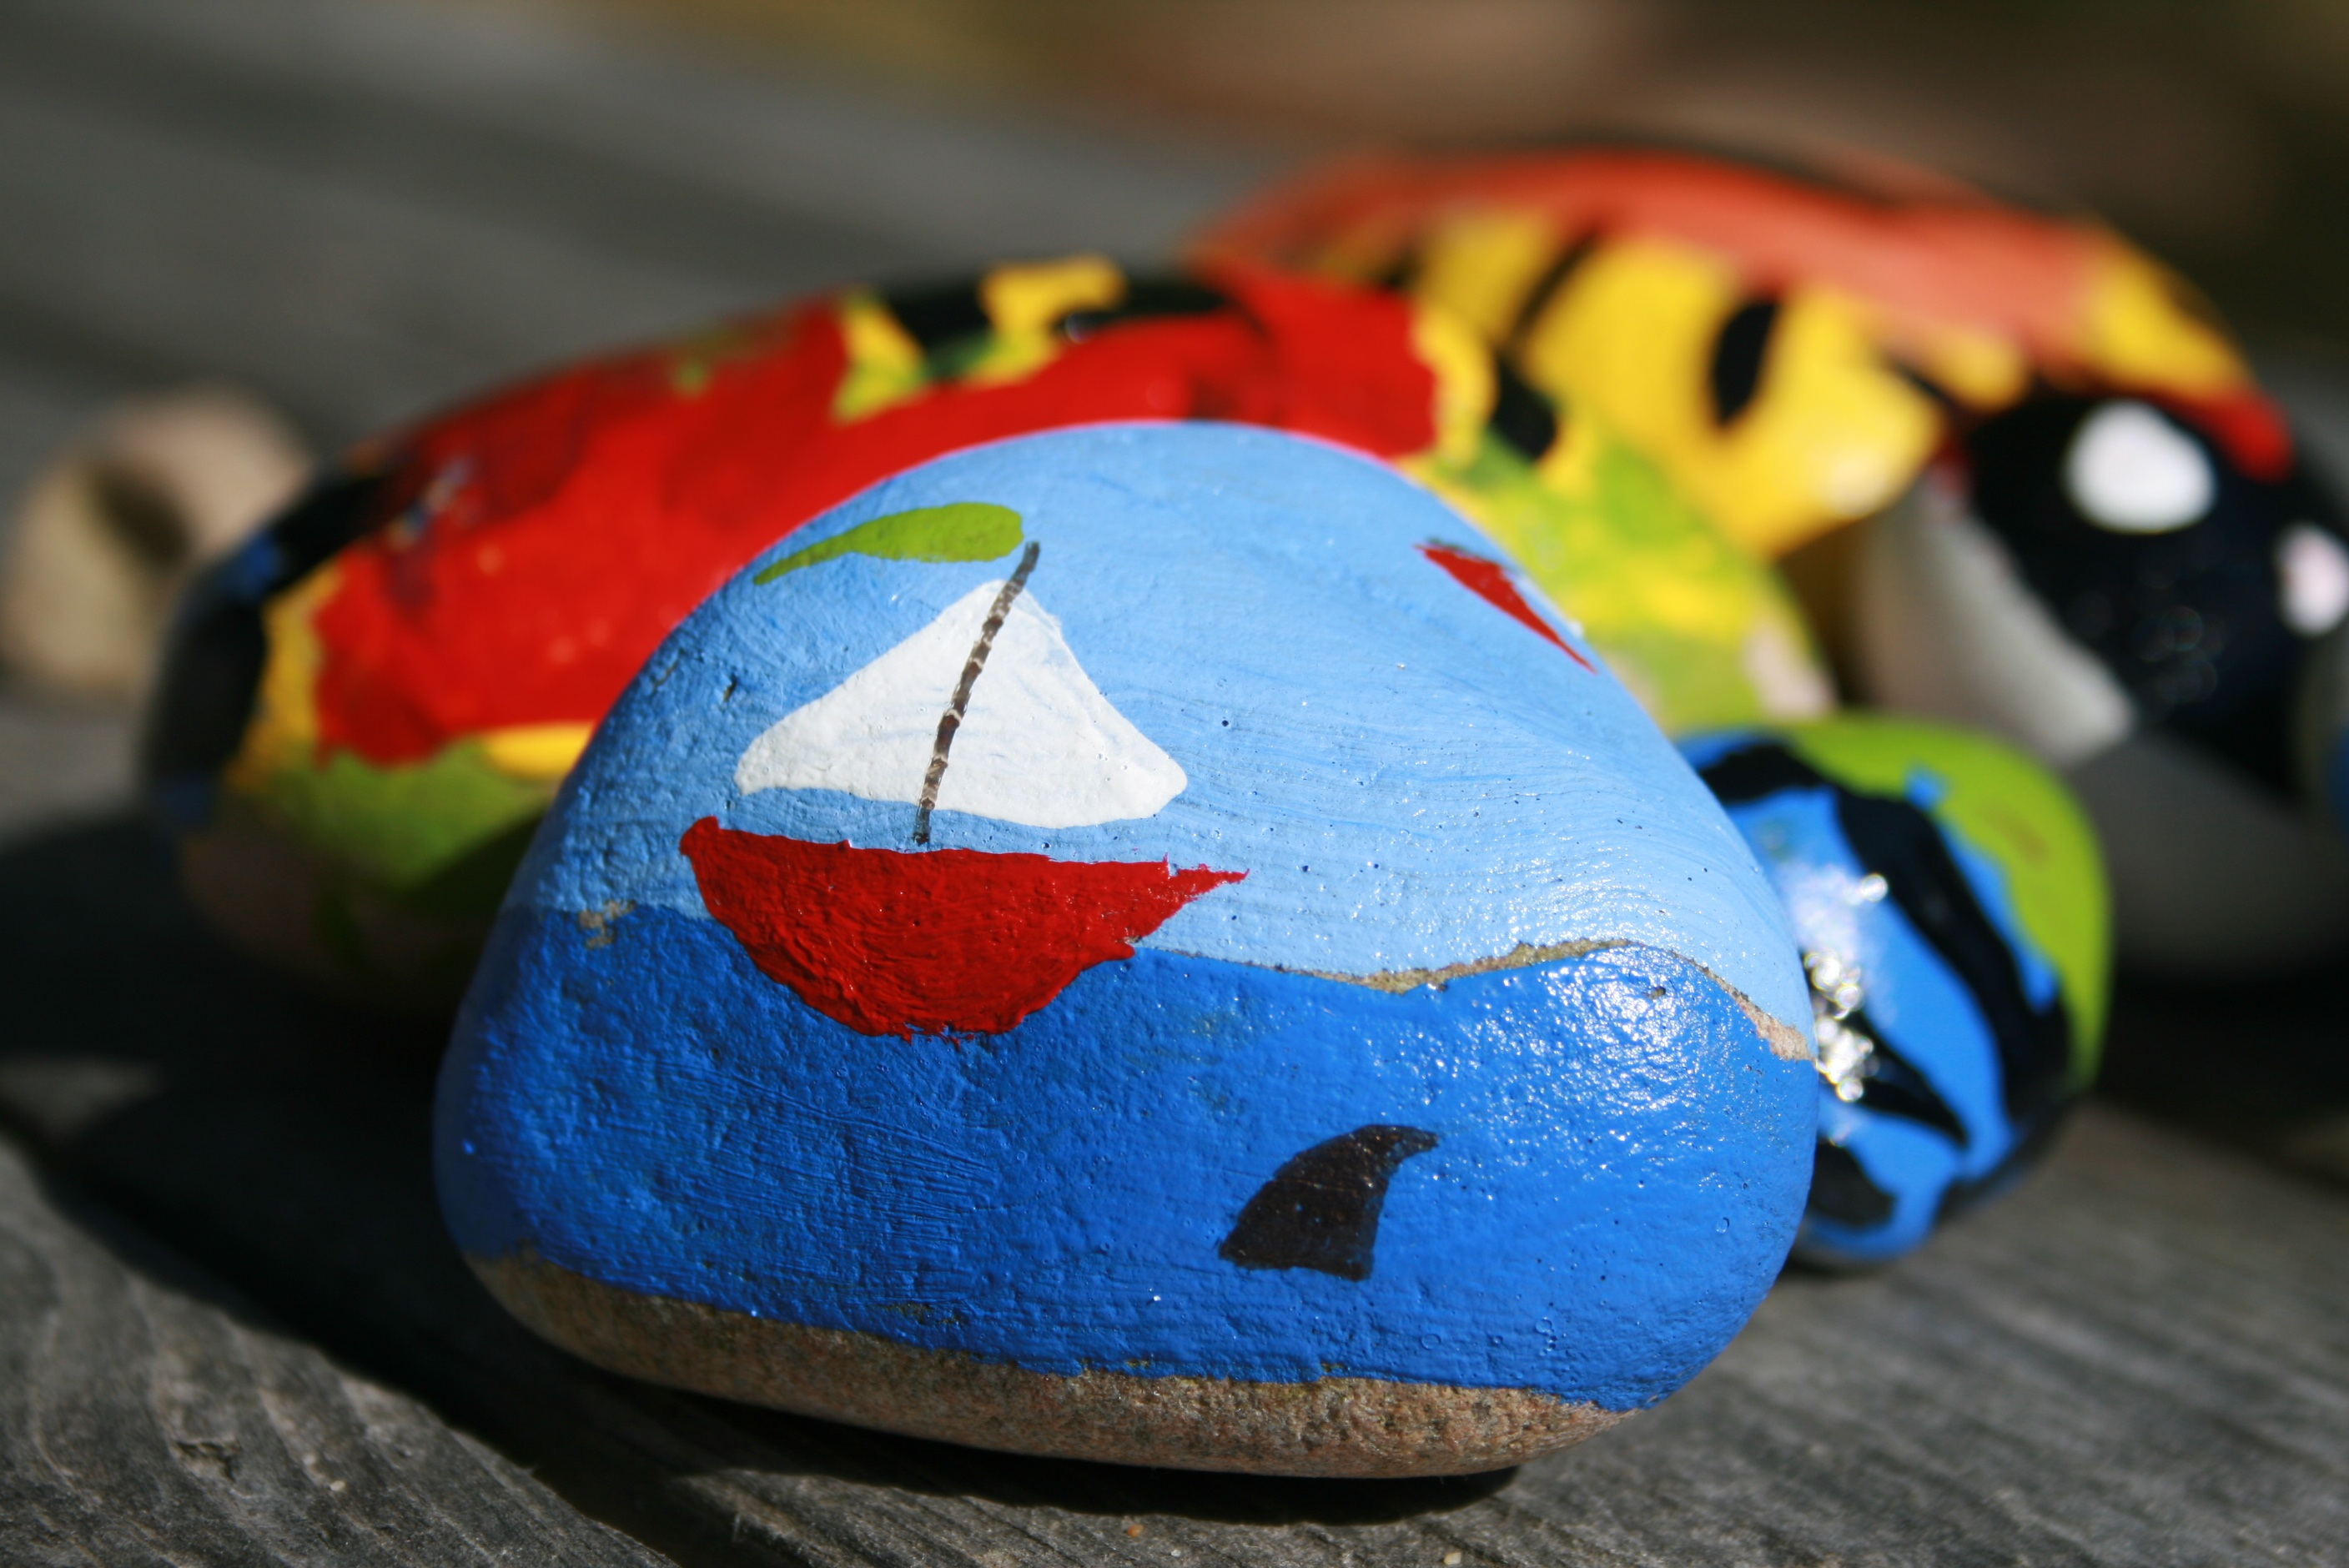 The Kindness Rock Project - Wikipedia